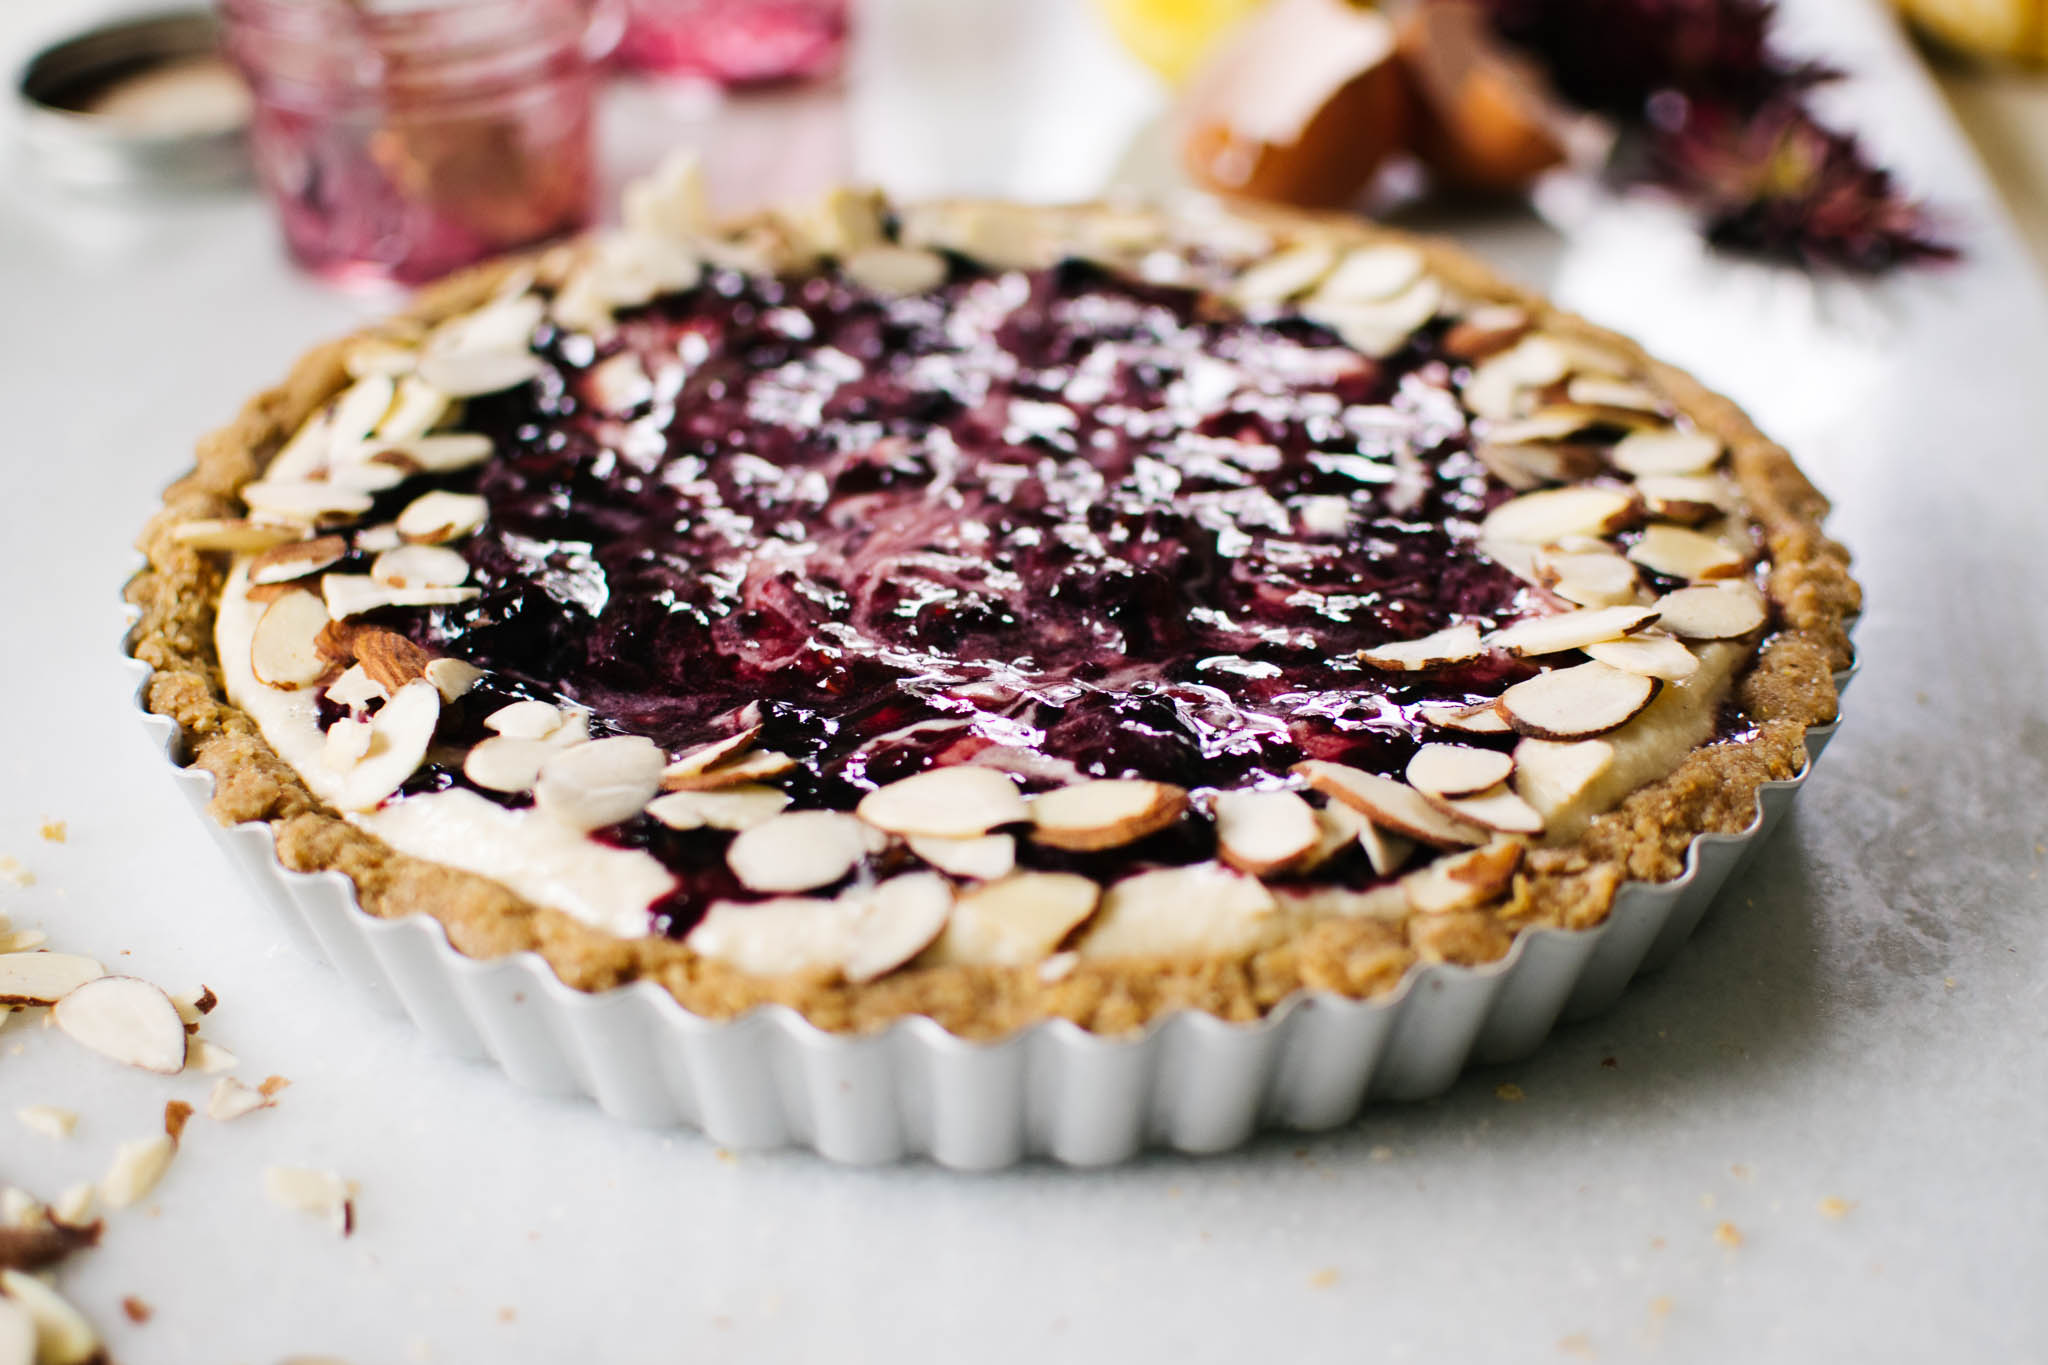 Ricotta & Jam Crostata from Naturally Vegetarian